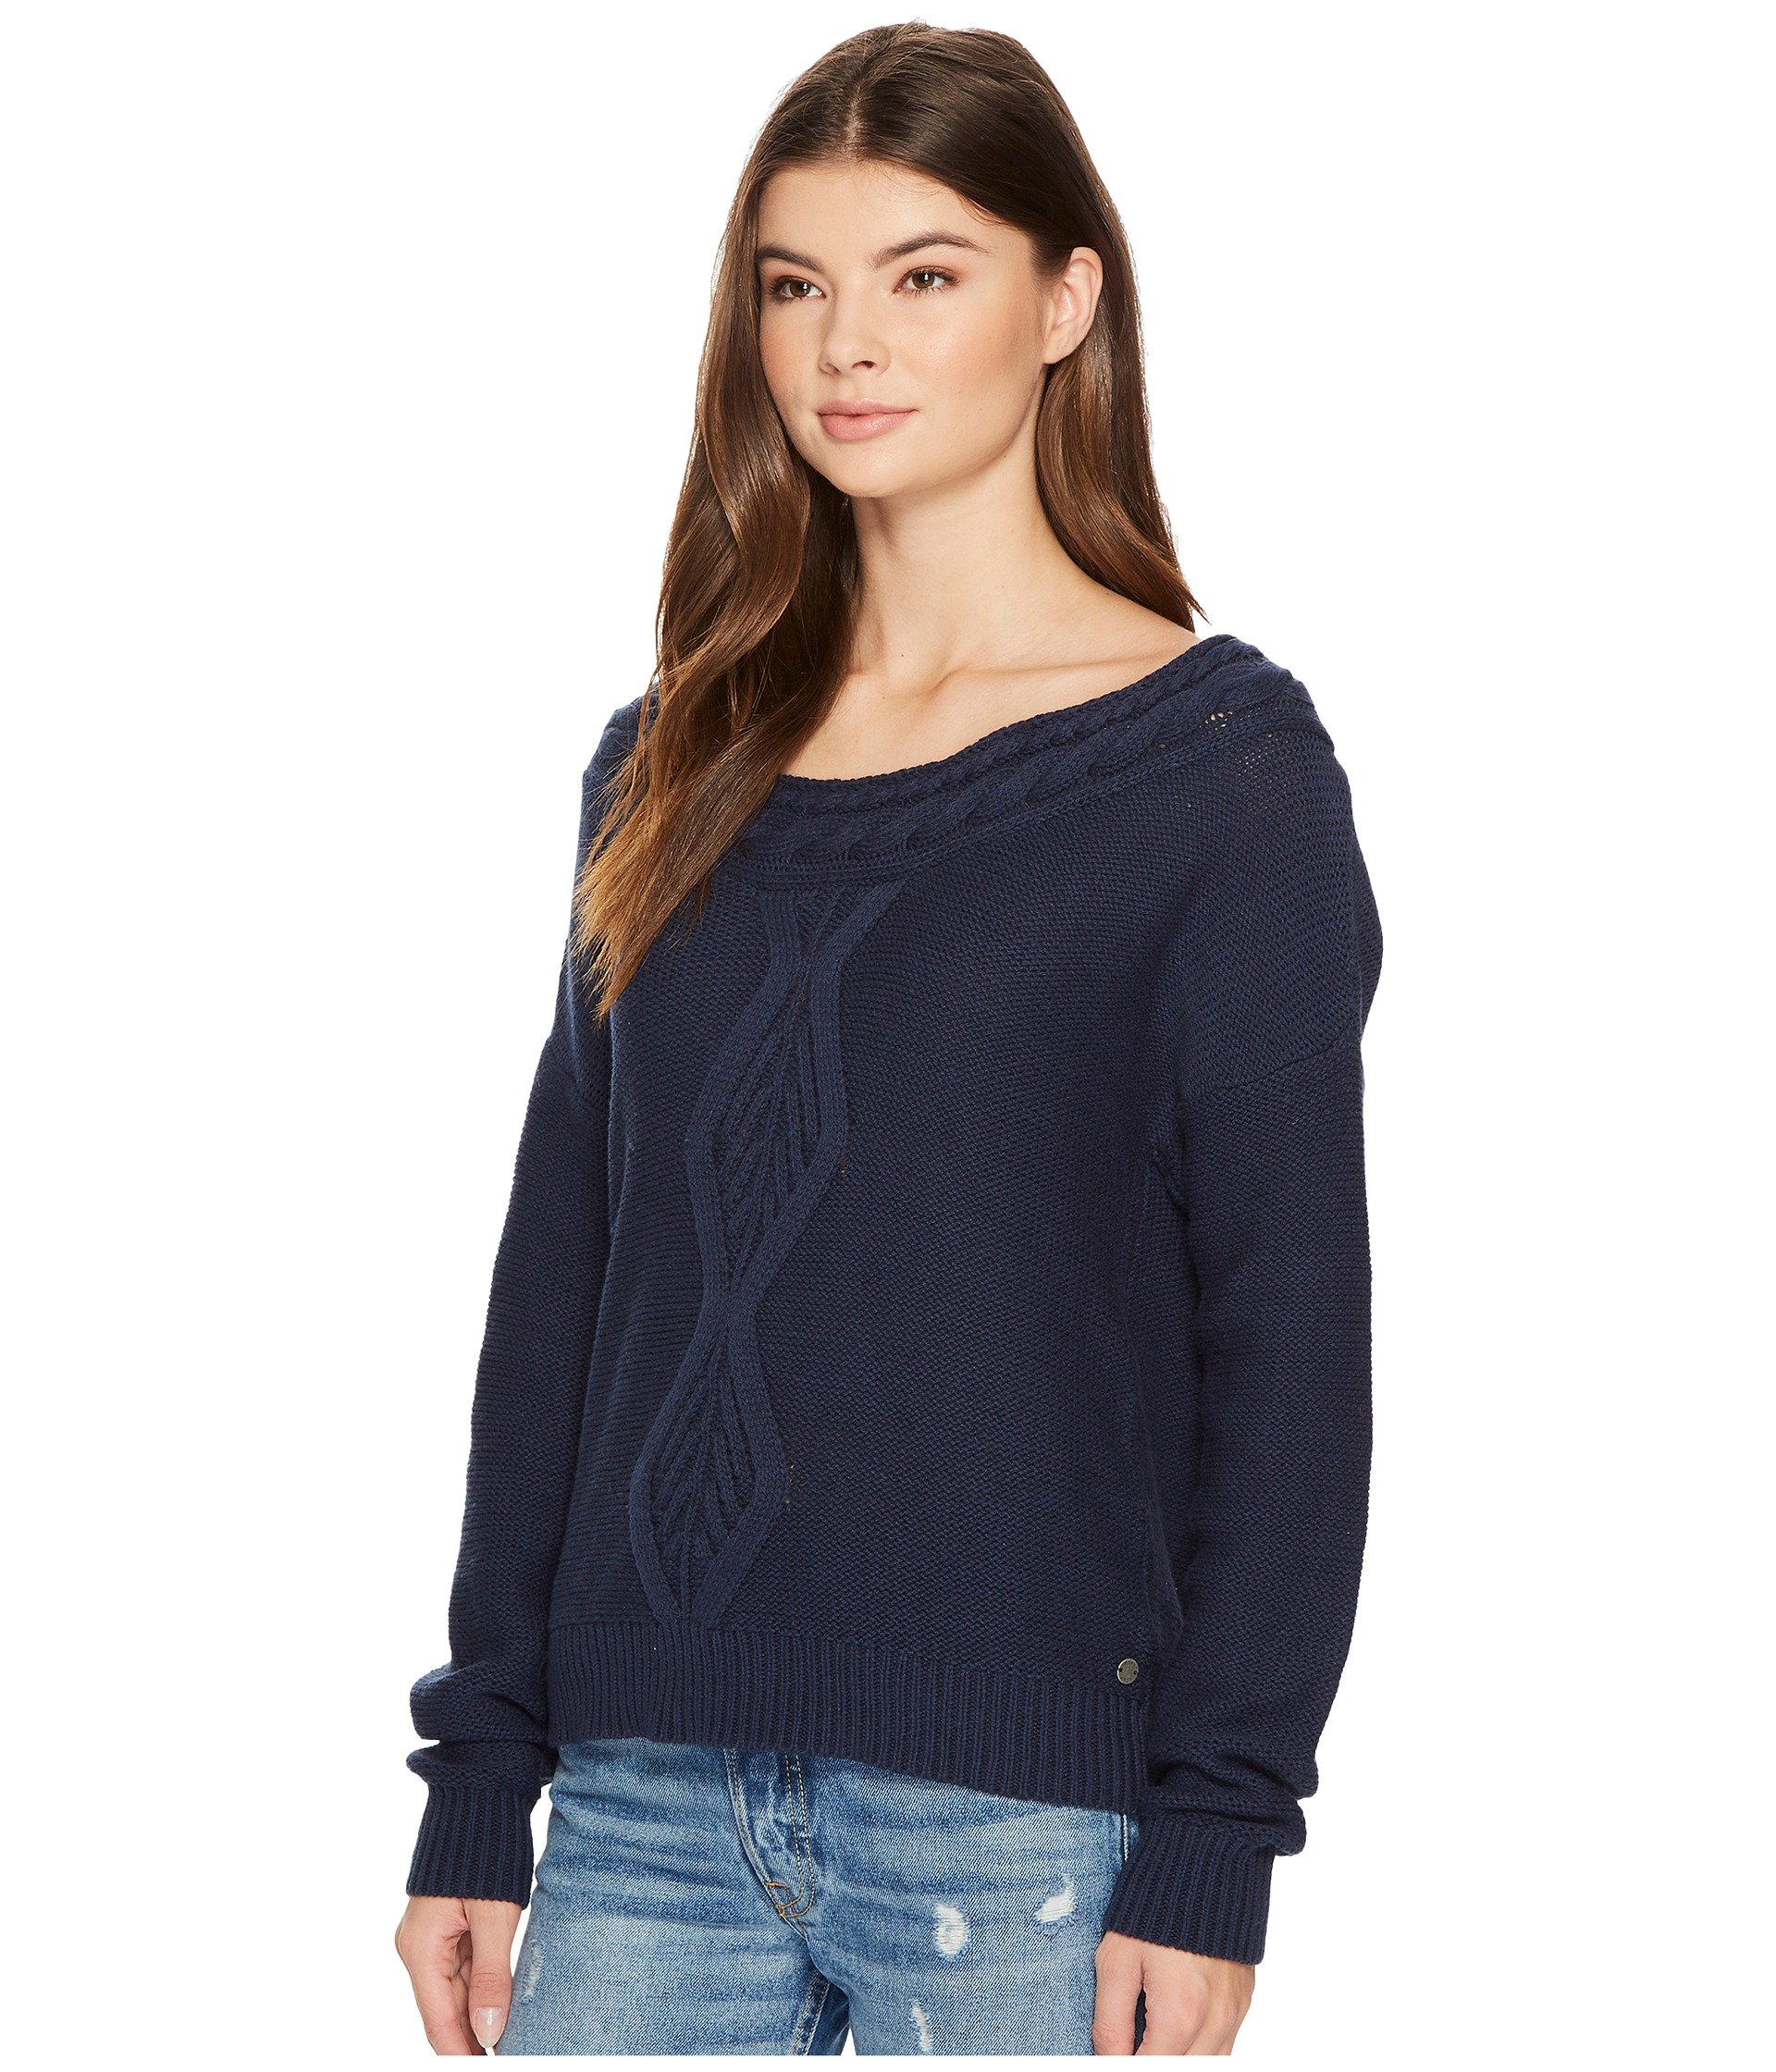 Roxy Choose To Shine Sweater at Zappos.com